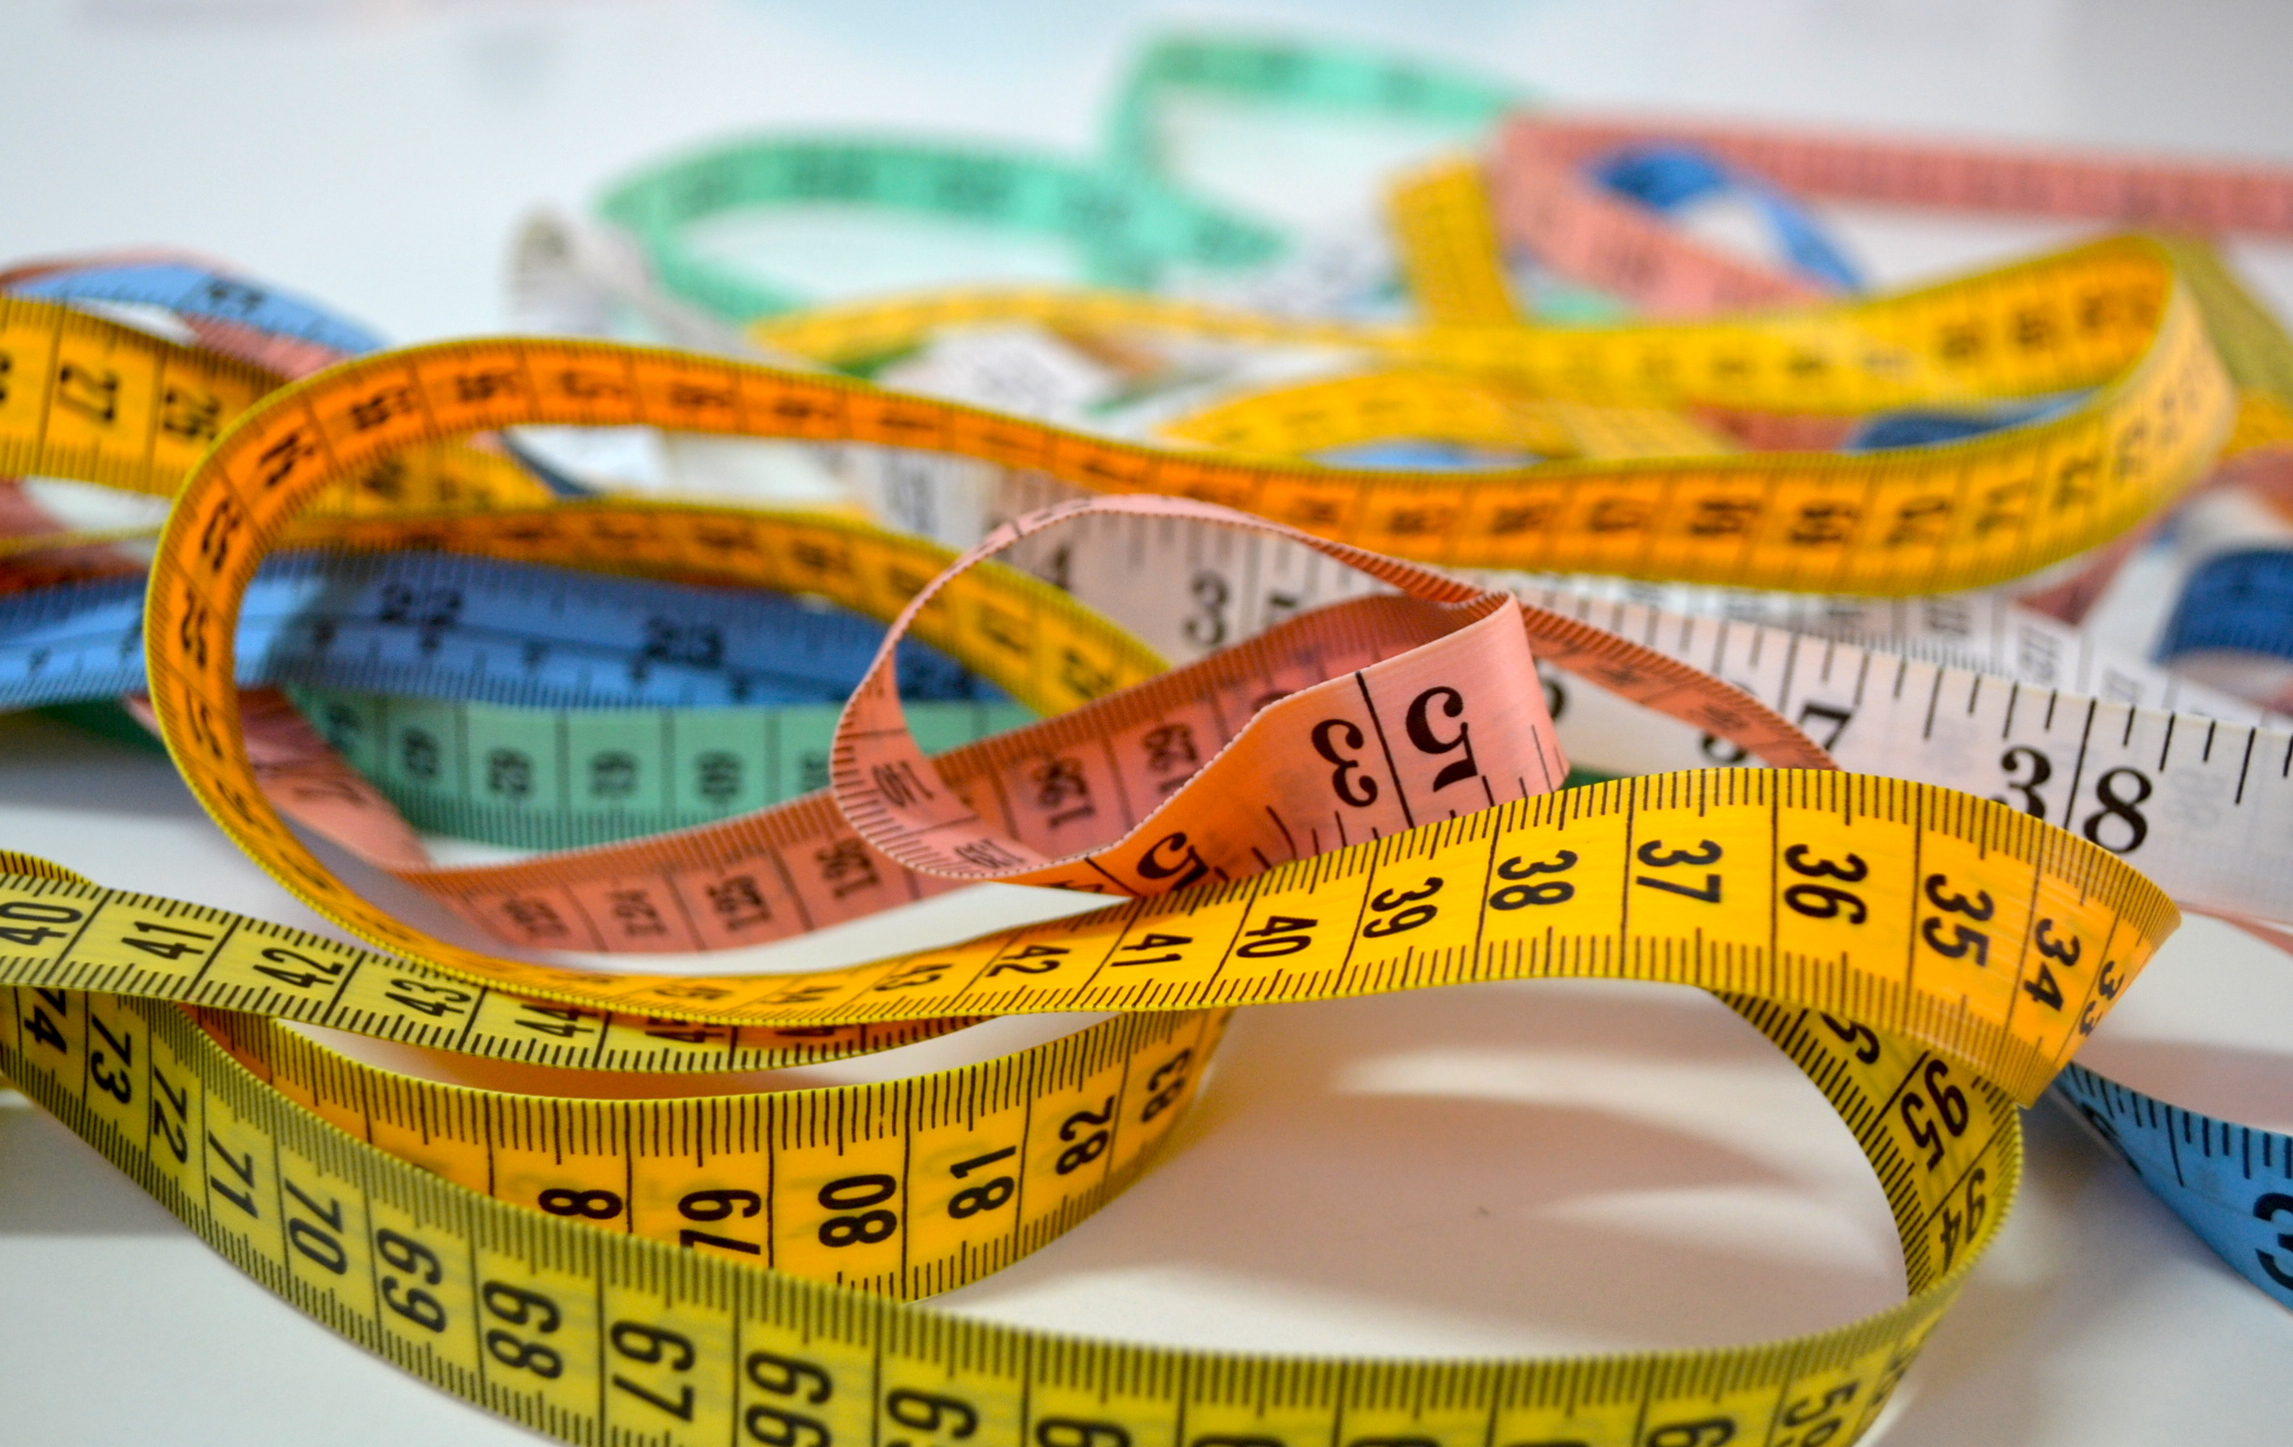 You'll need a measuring tape like one of these to calculate your body shape.